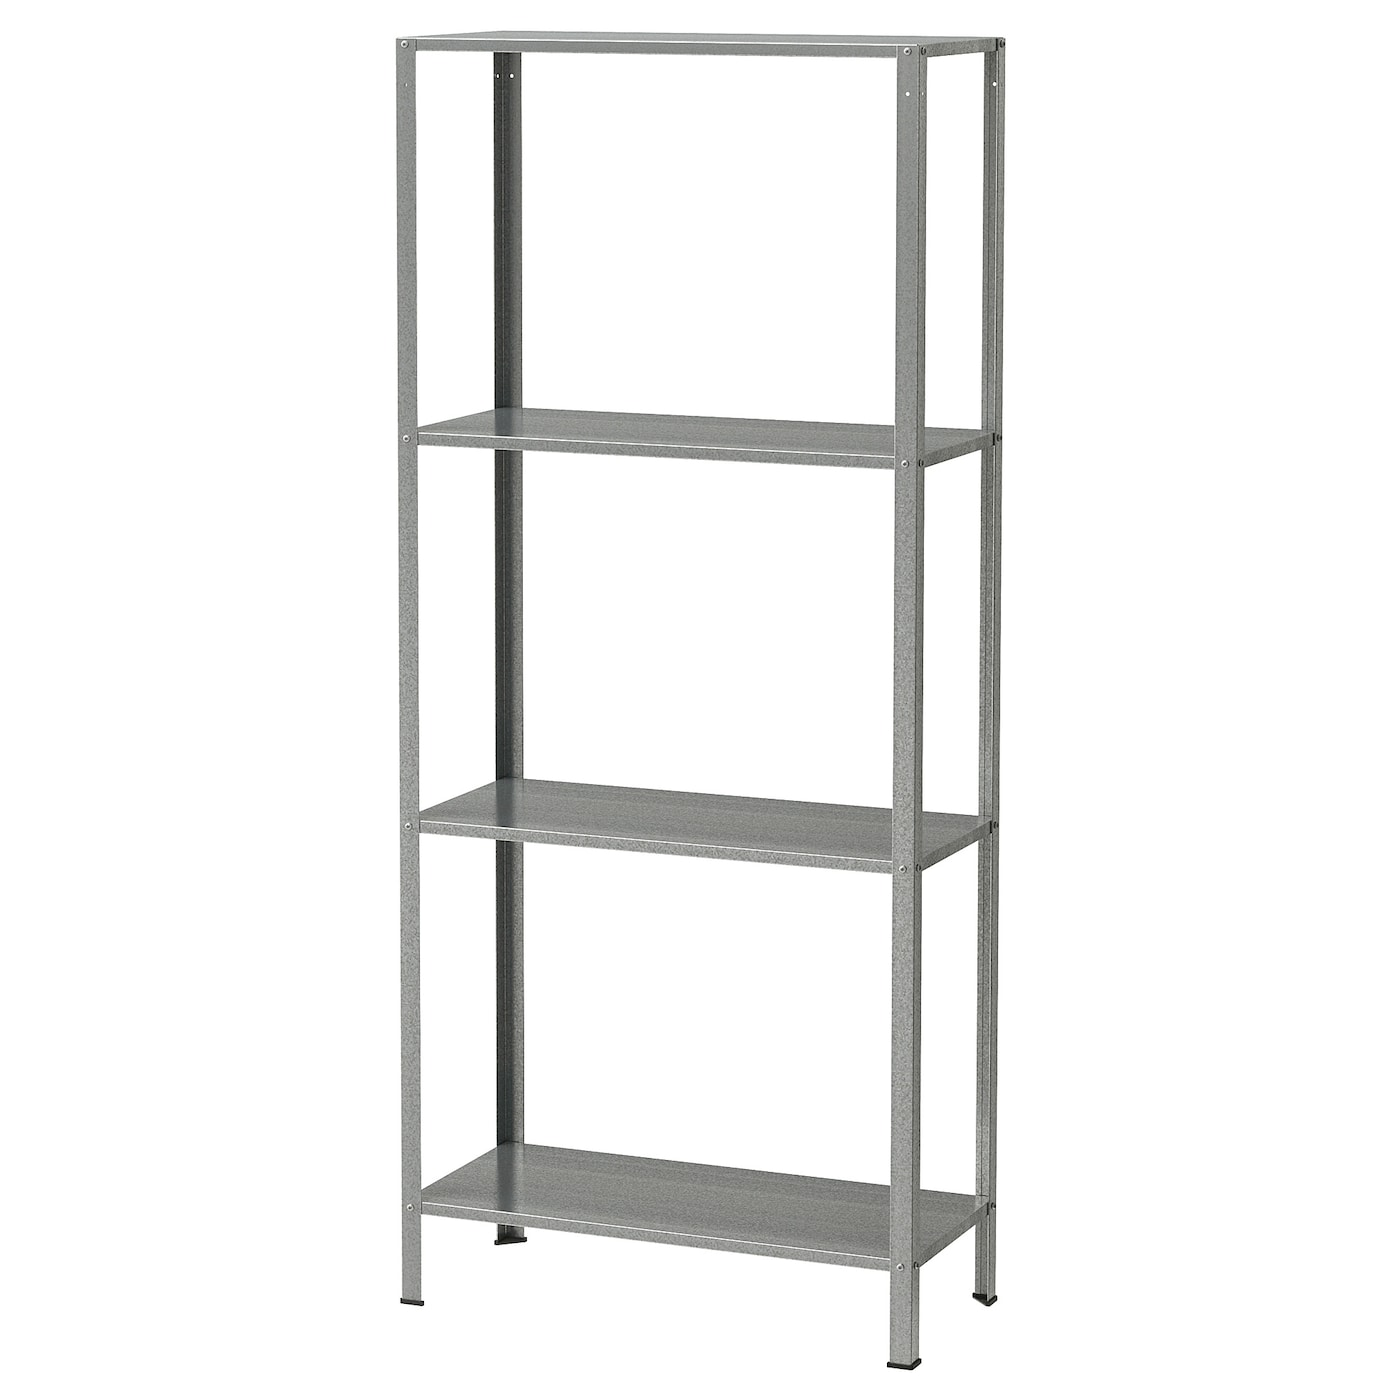 Shelving Unit Hyllis In Outdoor Galvanised